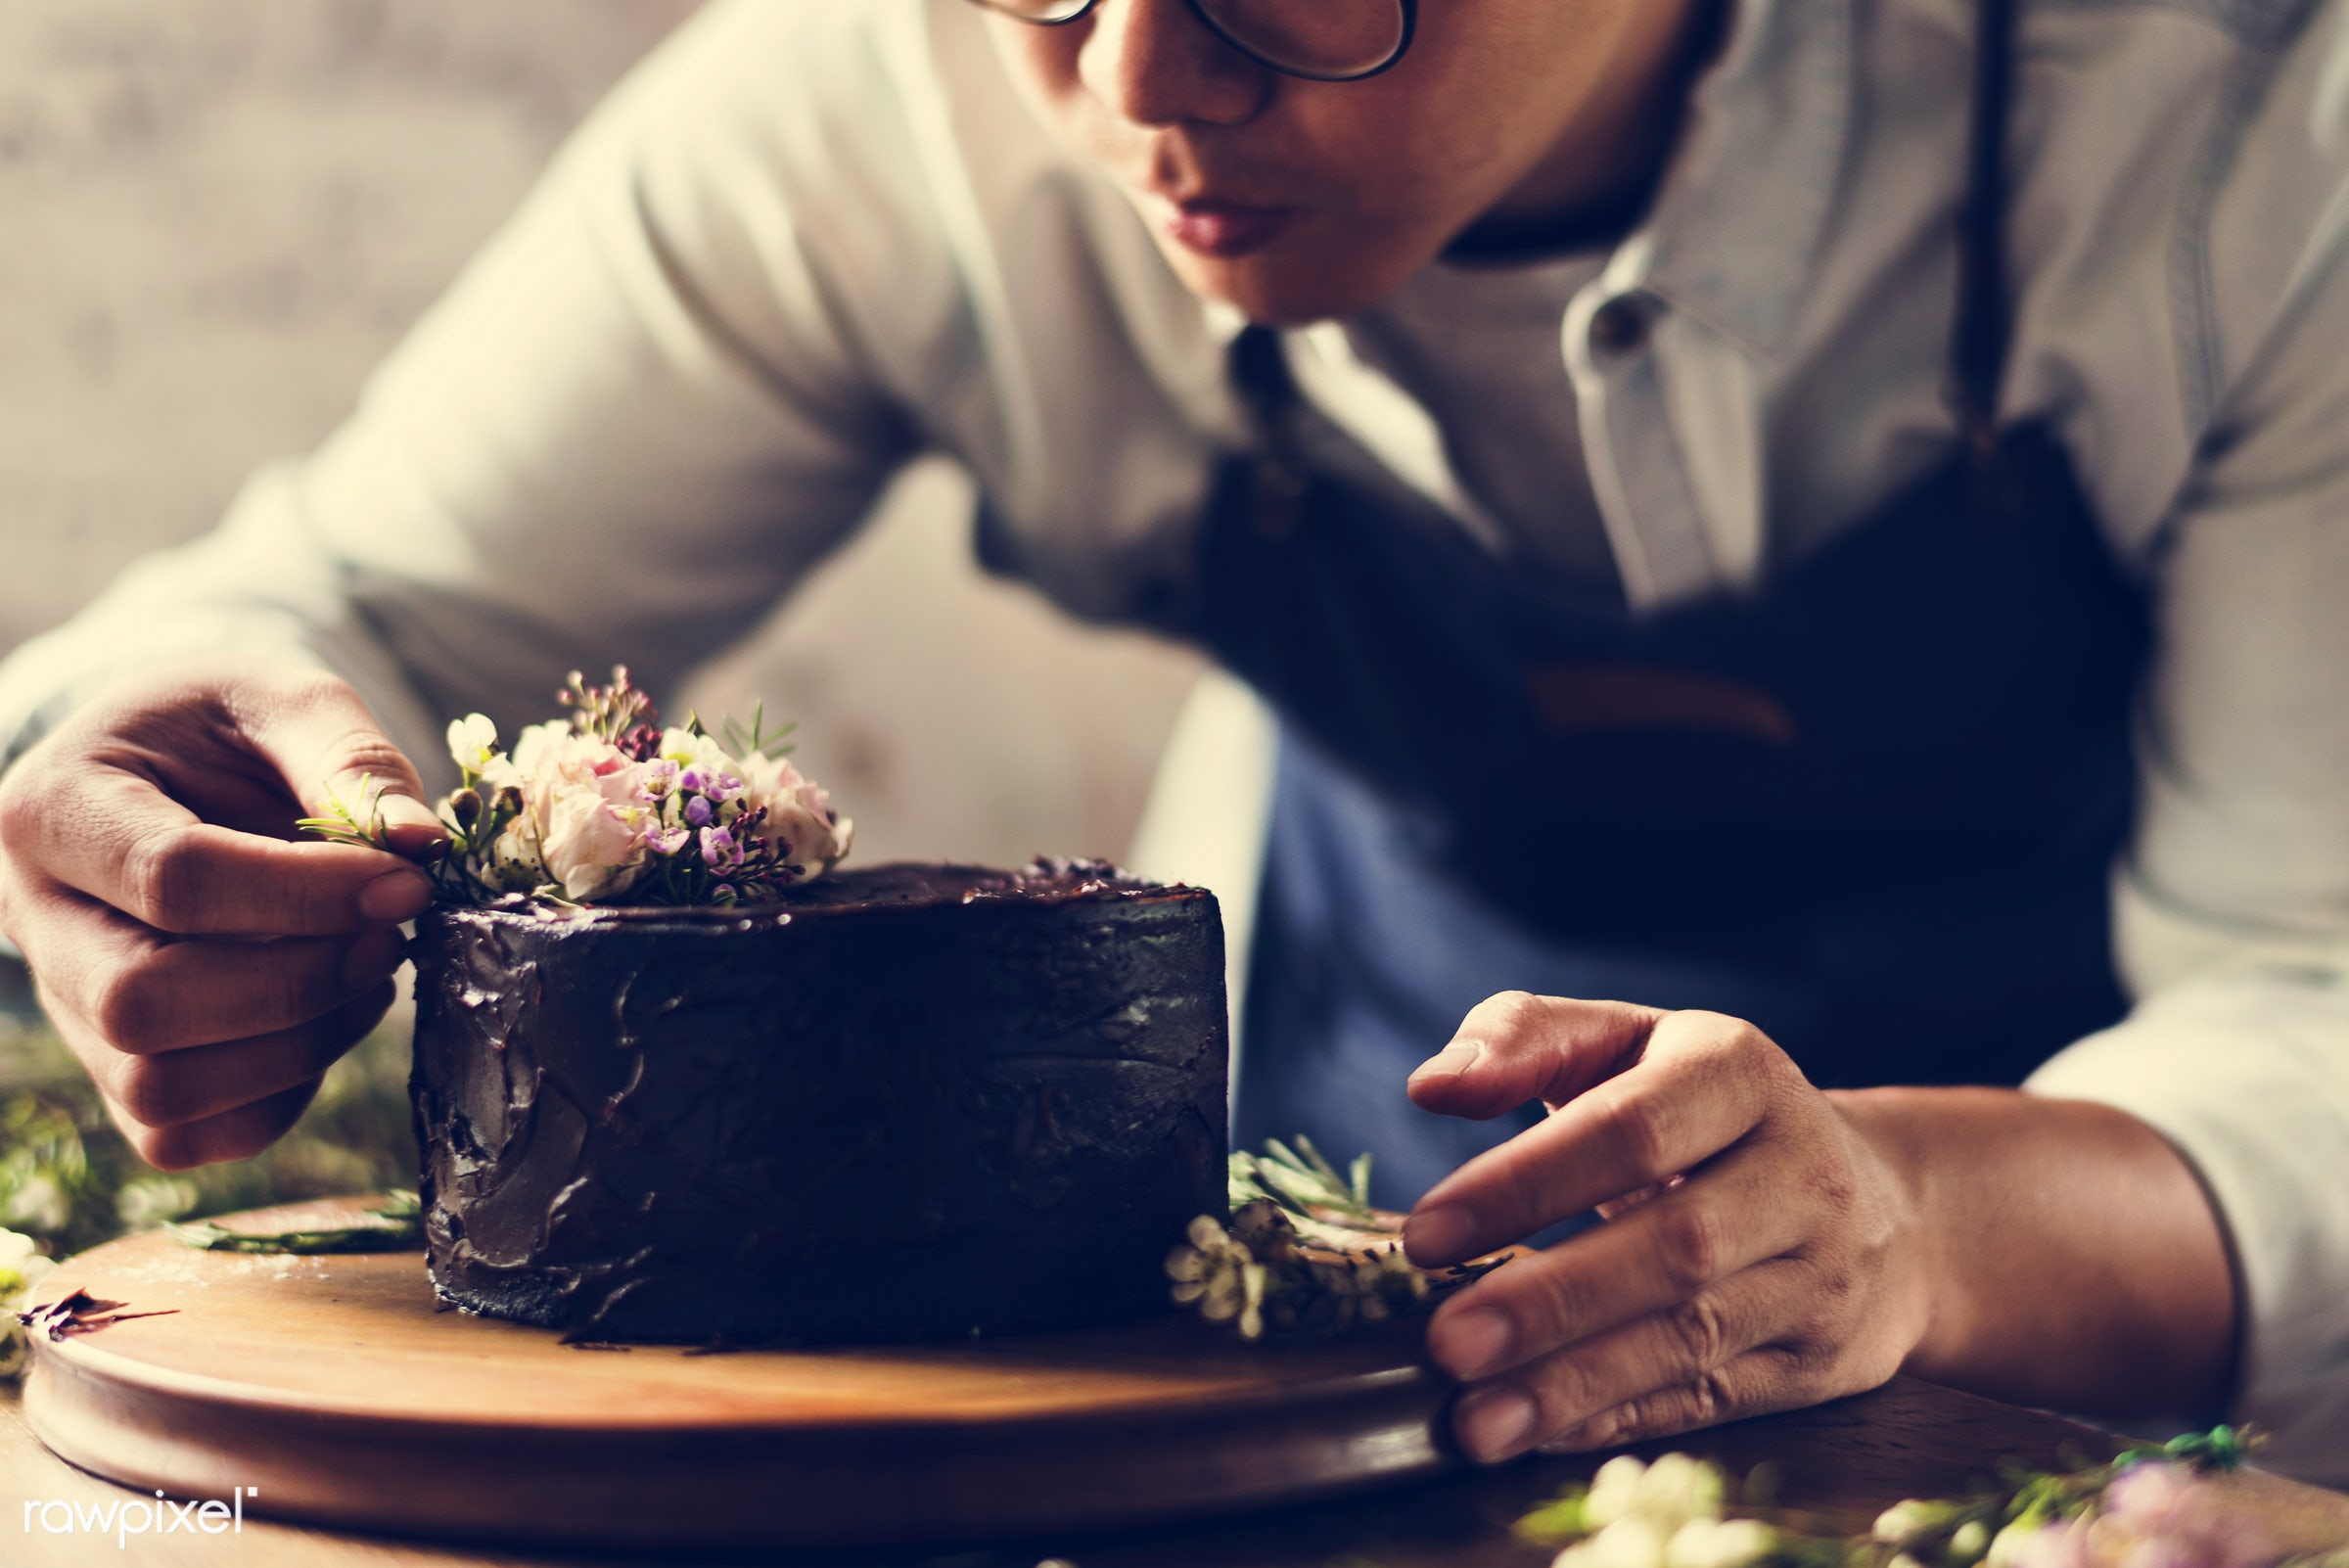 dish, person, recipe, appetite, party, taste, people, asian, bakery, event, flowers, gourmet, dessert, cake, patisserie,...